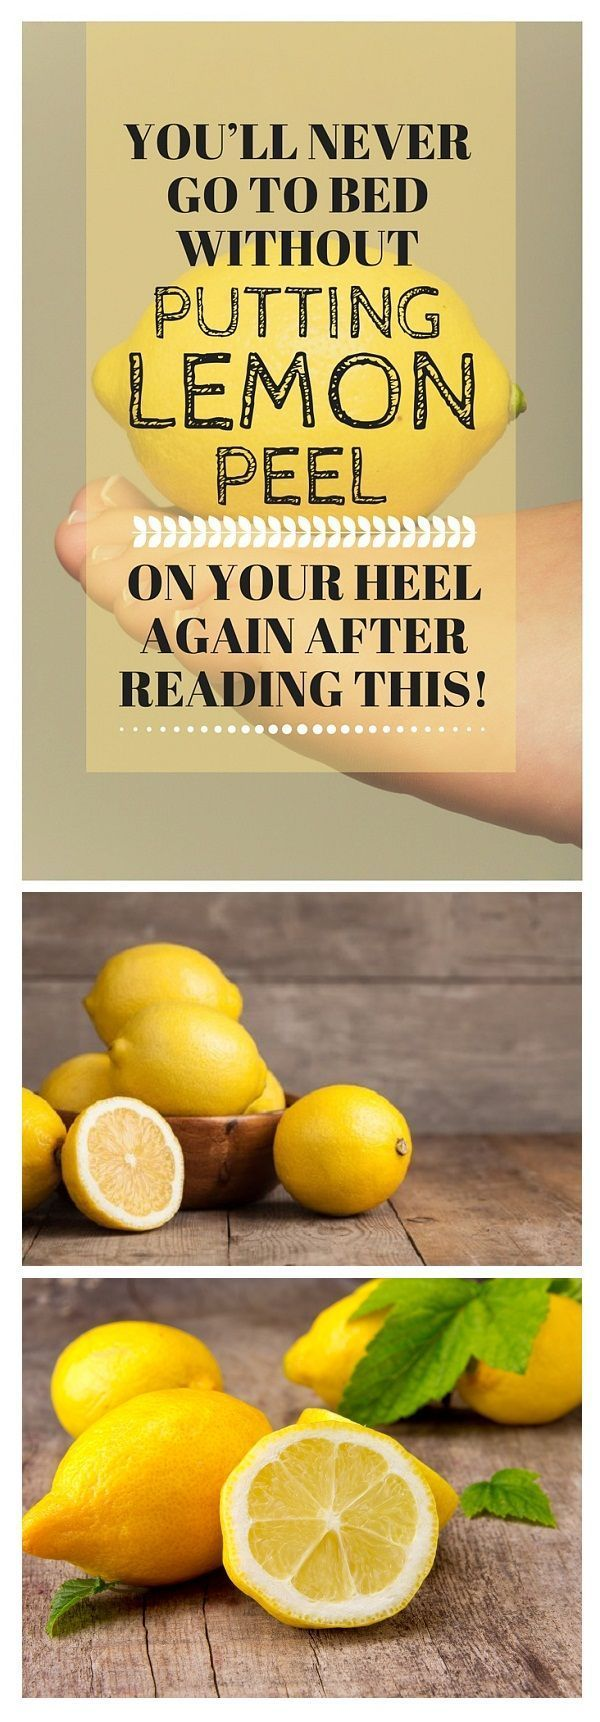 You'll Never Go to Bed Without Putting Lemon Peel On Your Heel, After Reading This Article